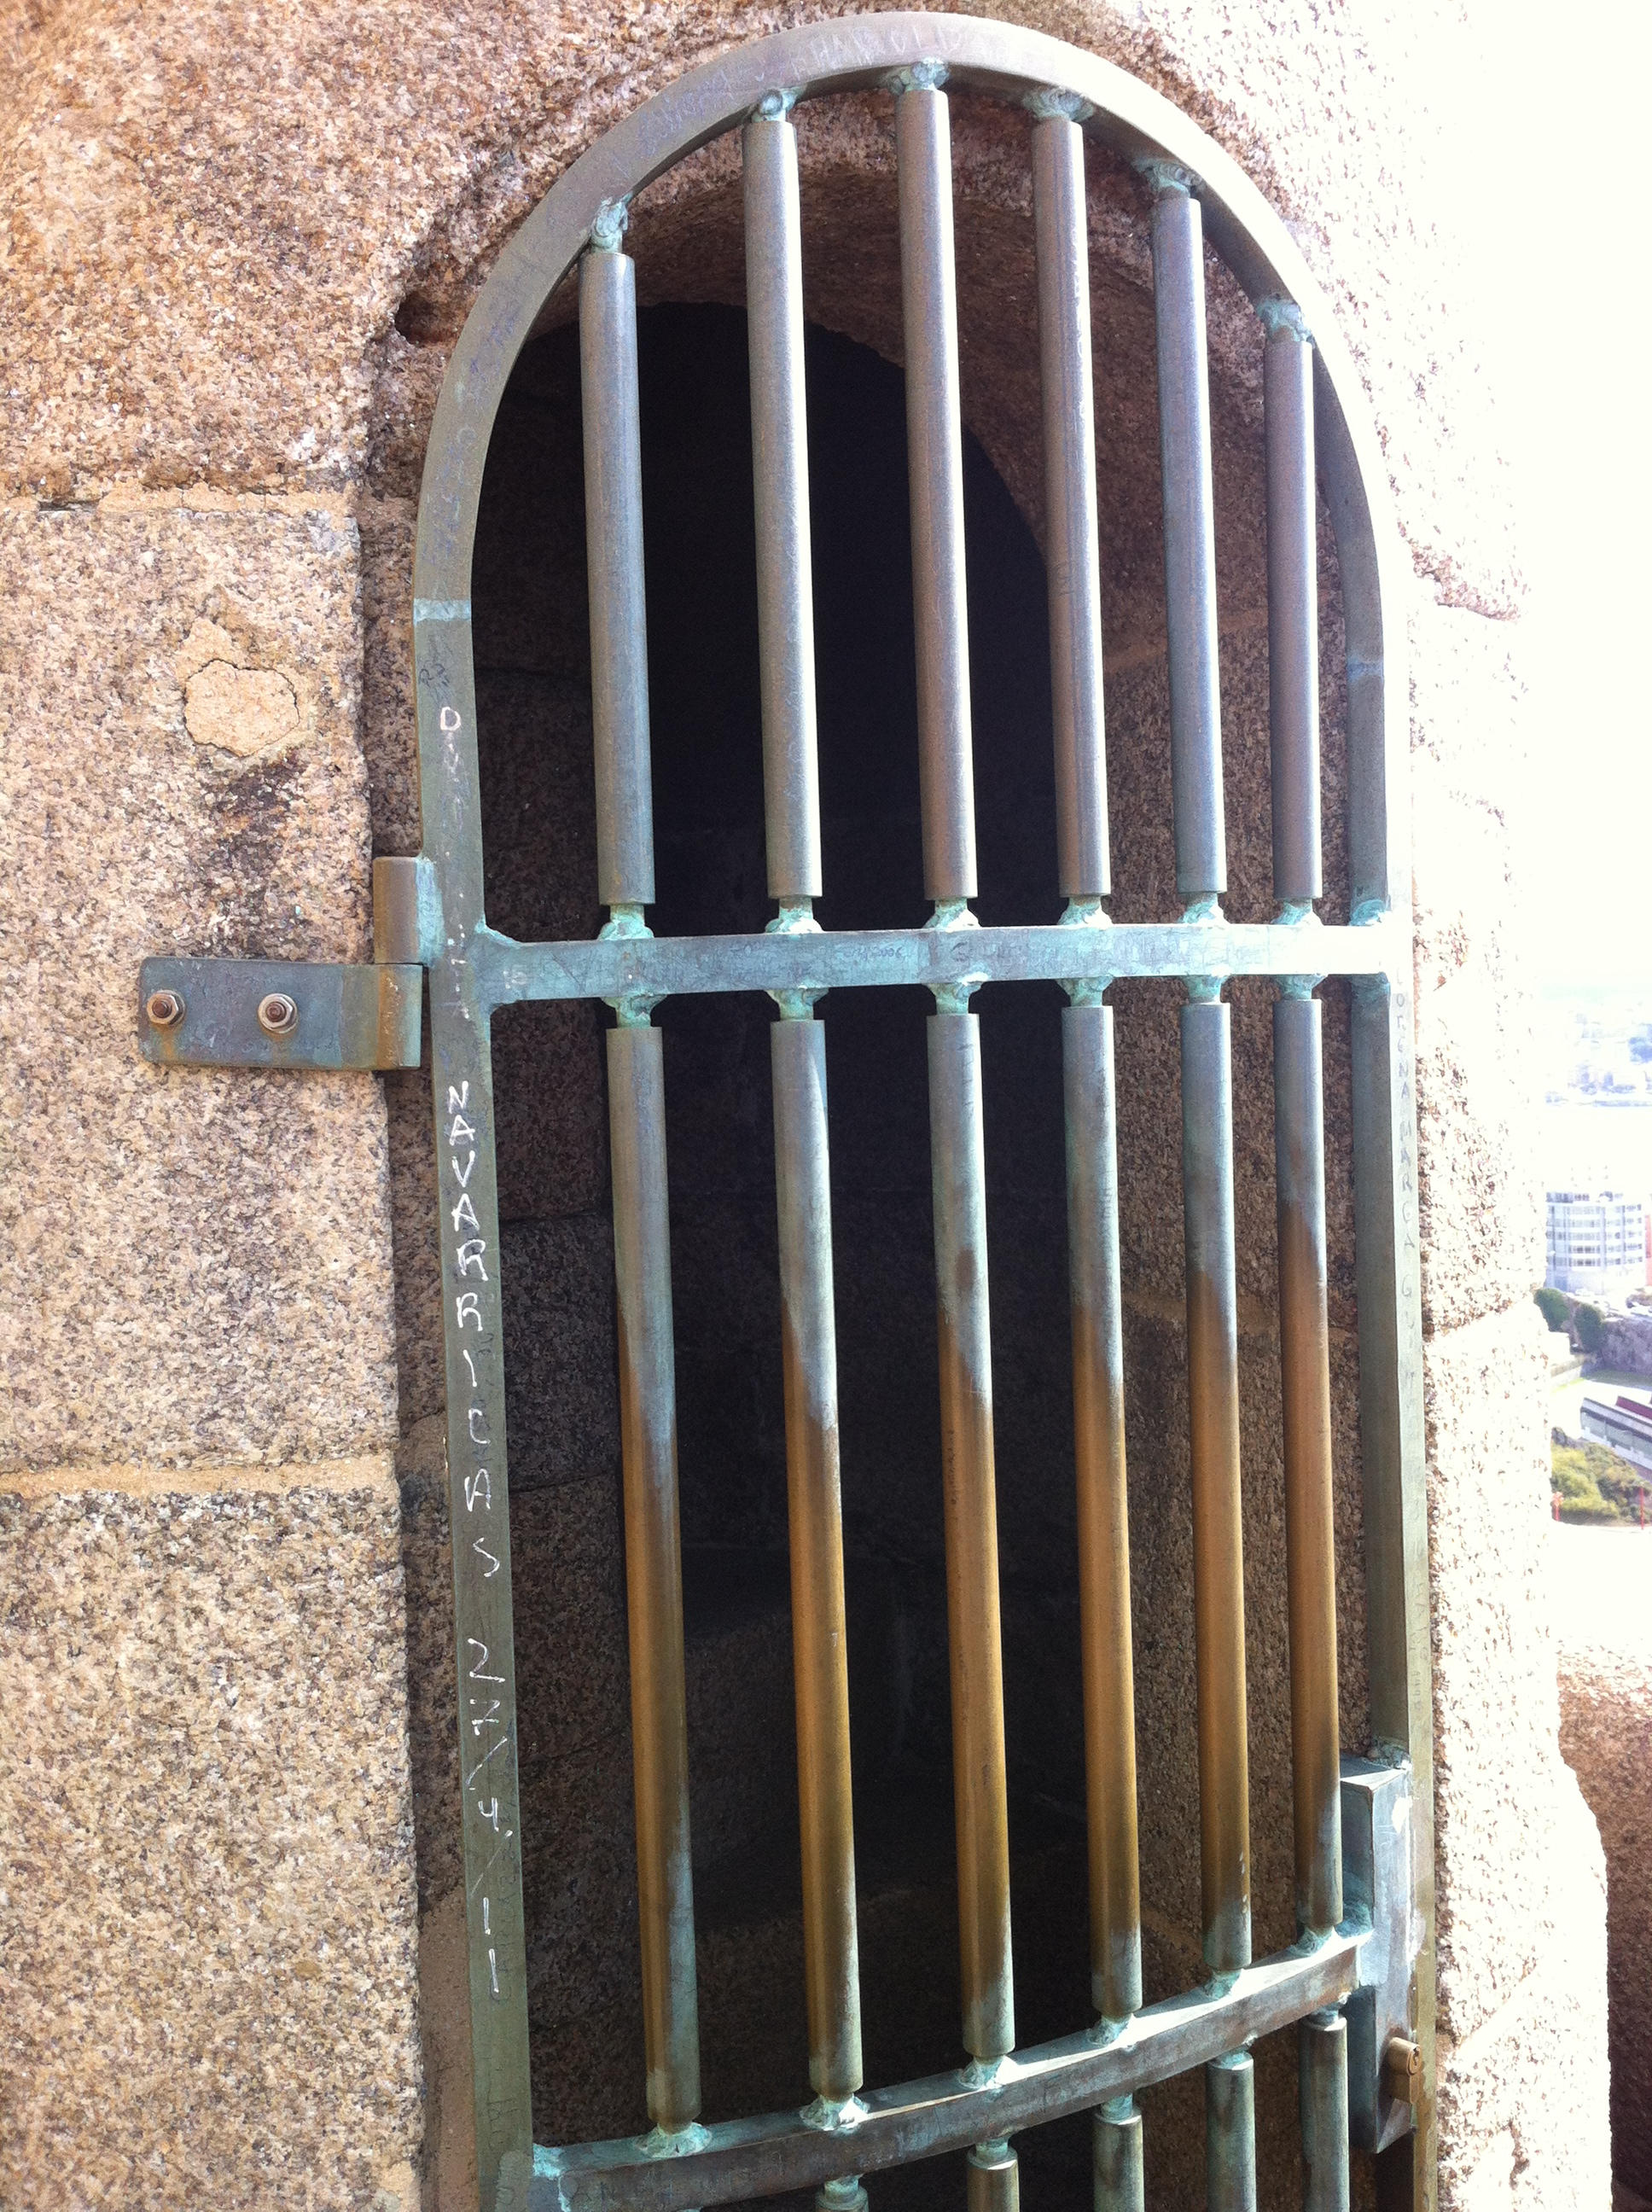 Tower of Hercules mystery door